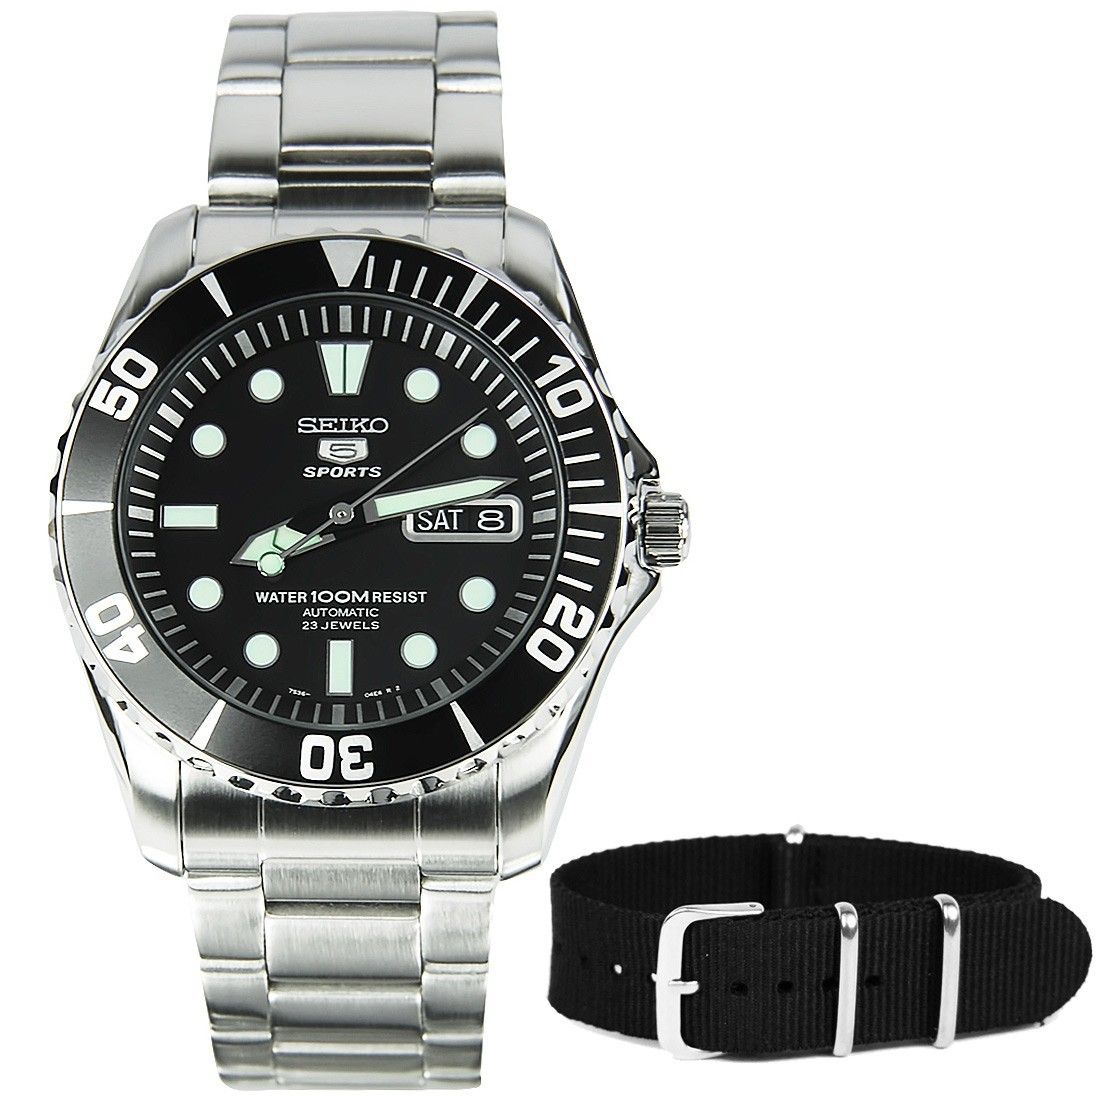 SNZF17K1 Seiko 5 Sports Watch with additional band #sportswatches